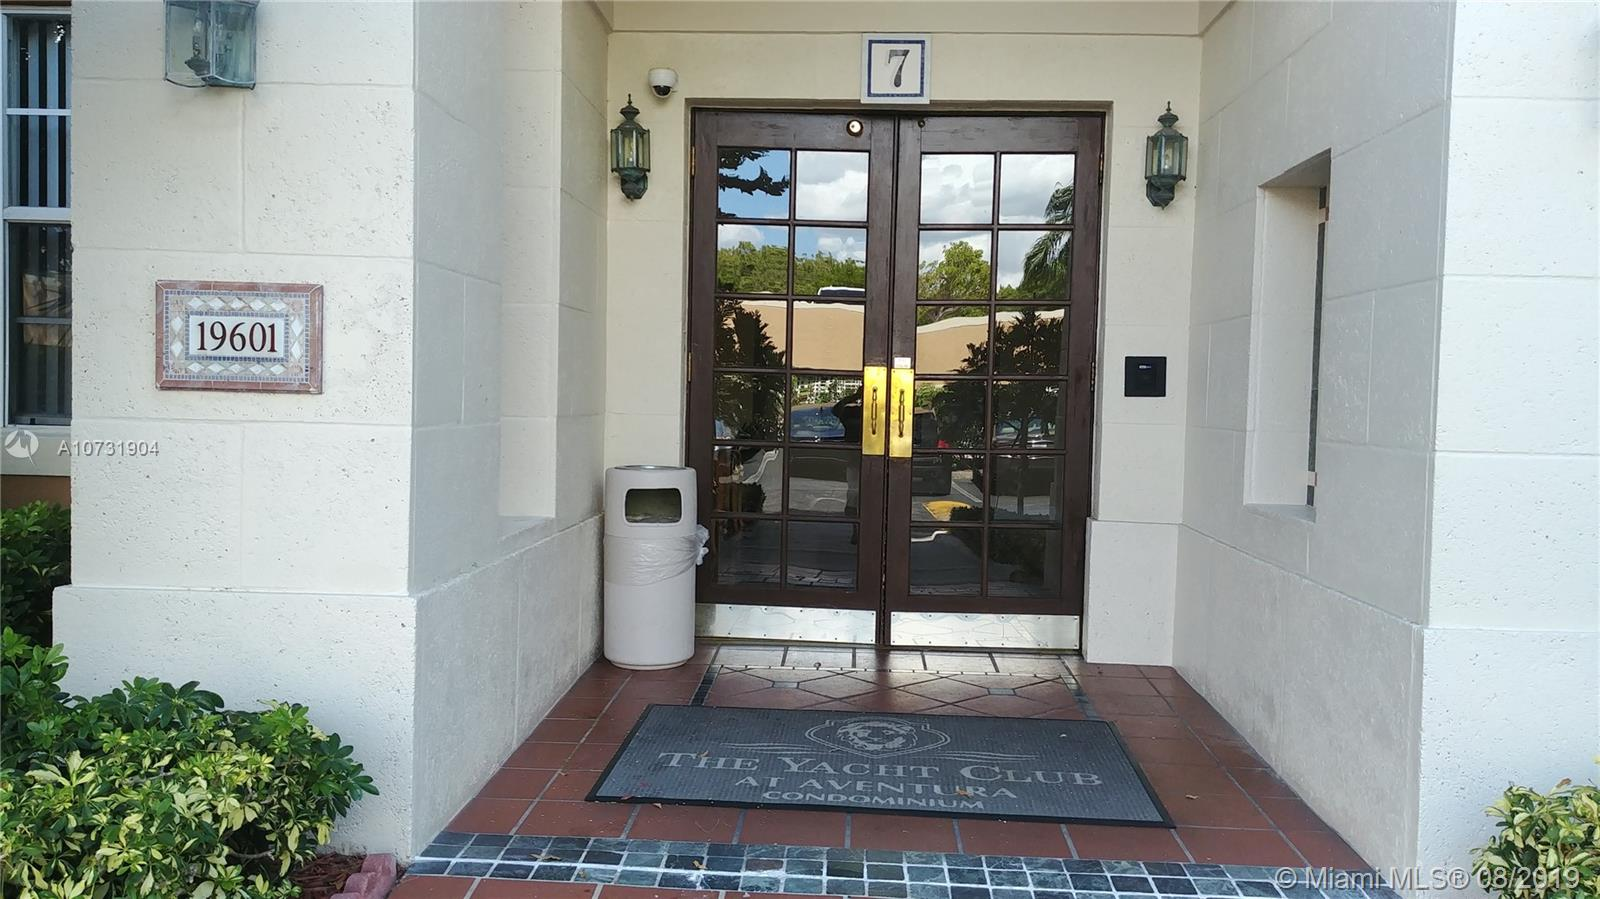 19601 E COUNTRY CLUB DR #7202 For Sale A10731904, FL